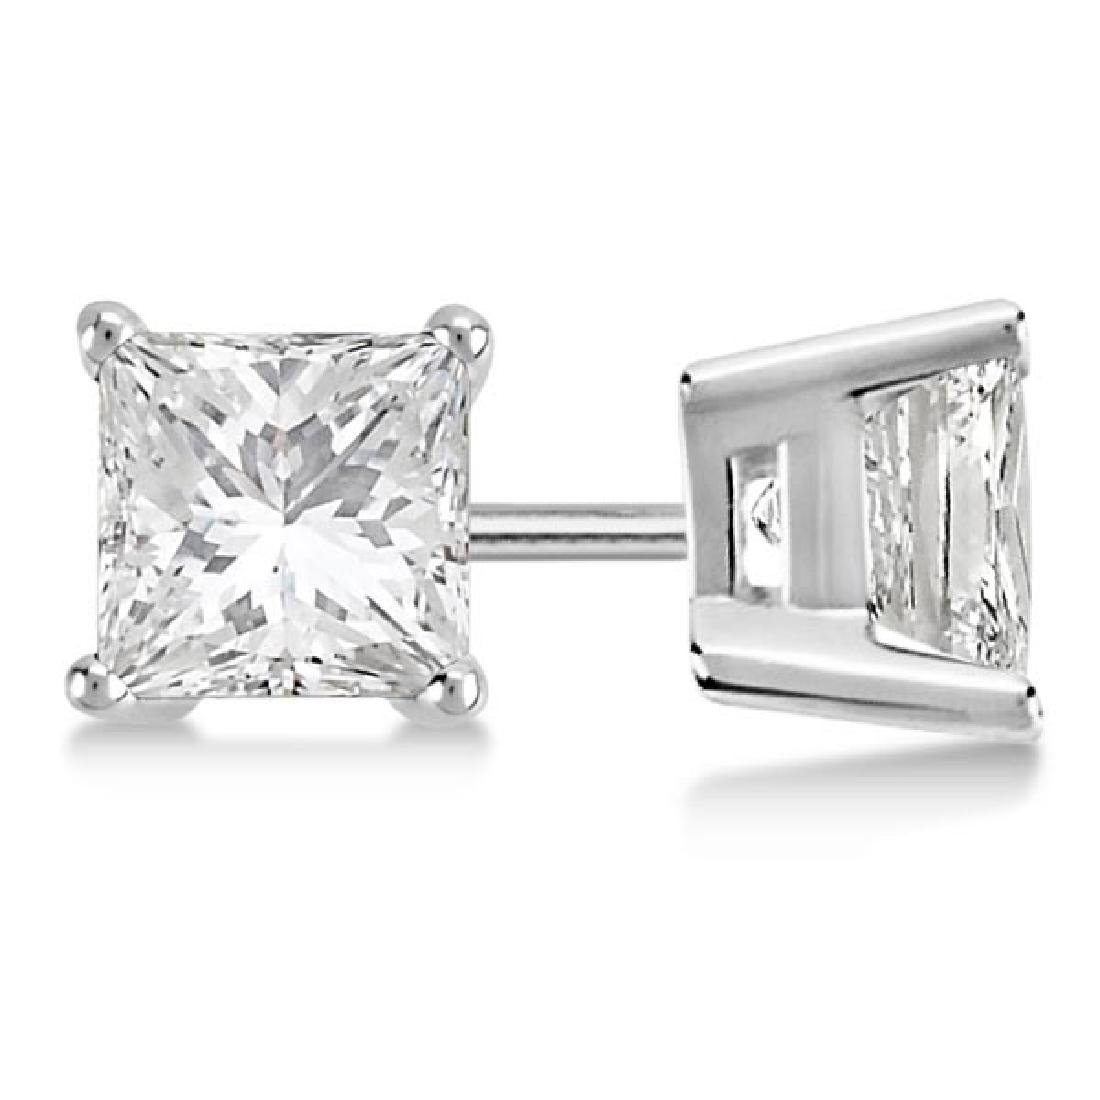 Certified 1.11 CTW Princess Diamond Stud Earrings D/SI2